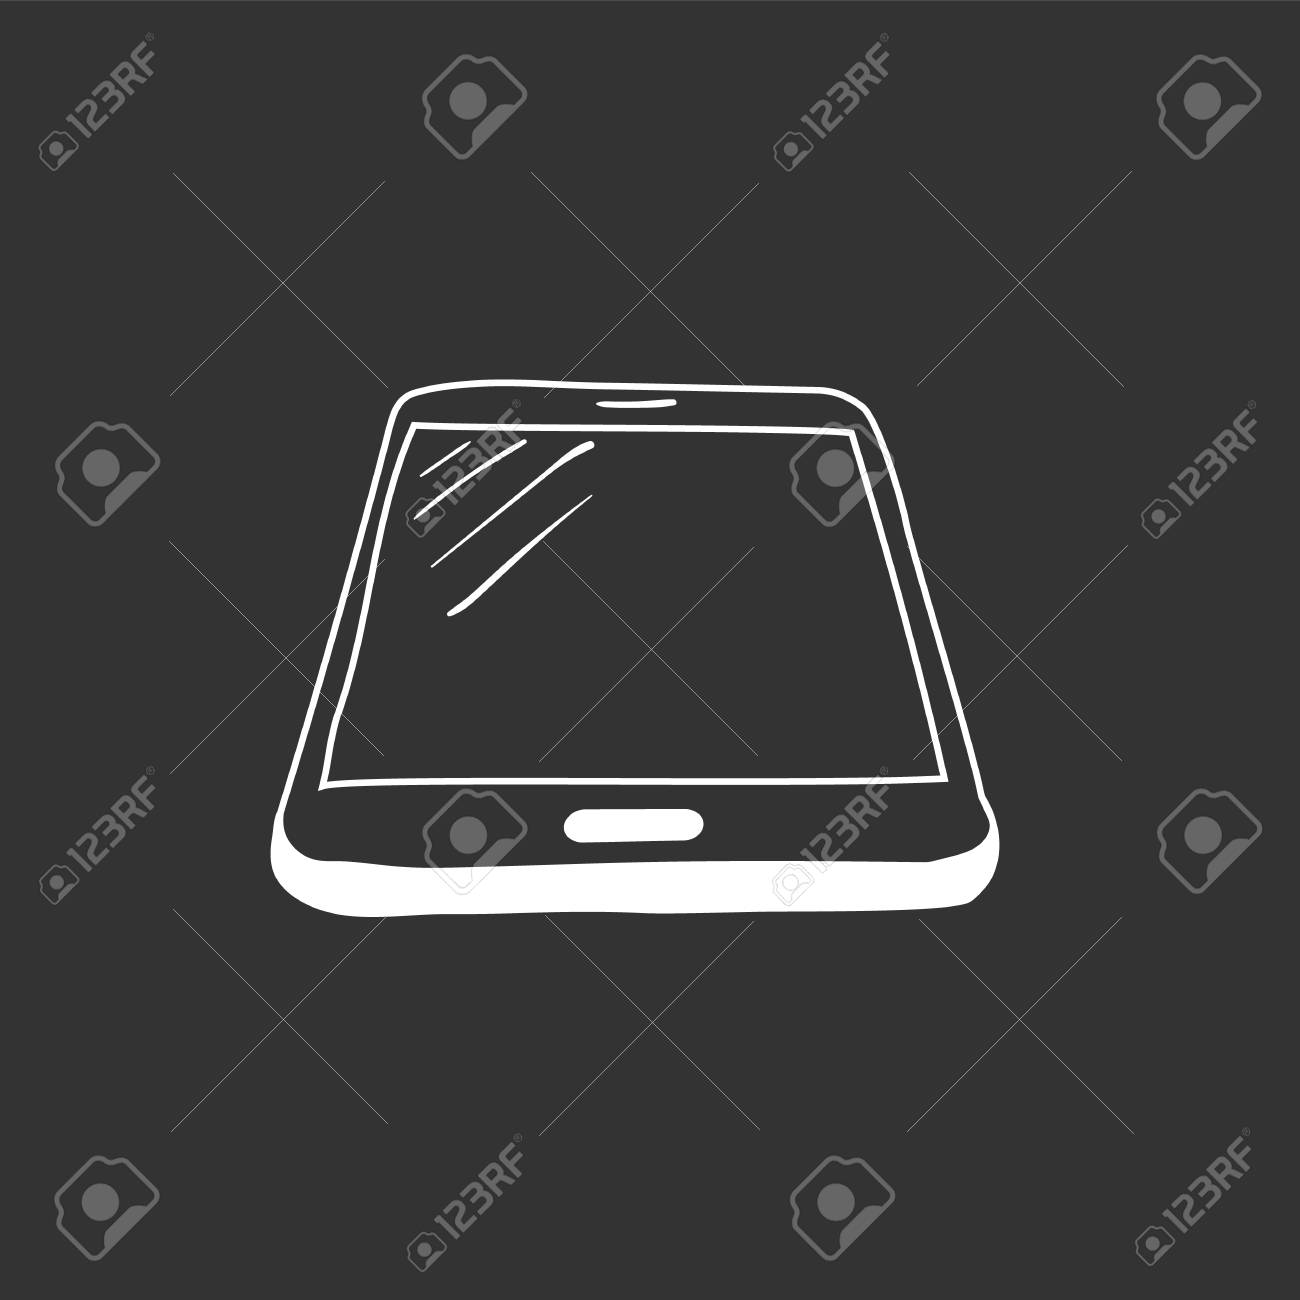 Hand drawn sketch of mobile phone, mockups